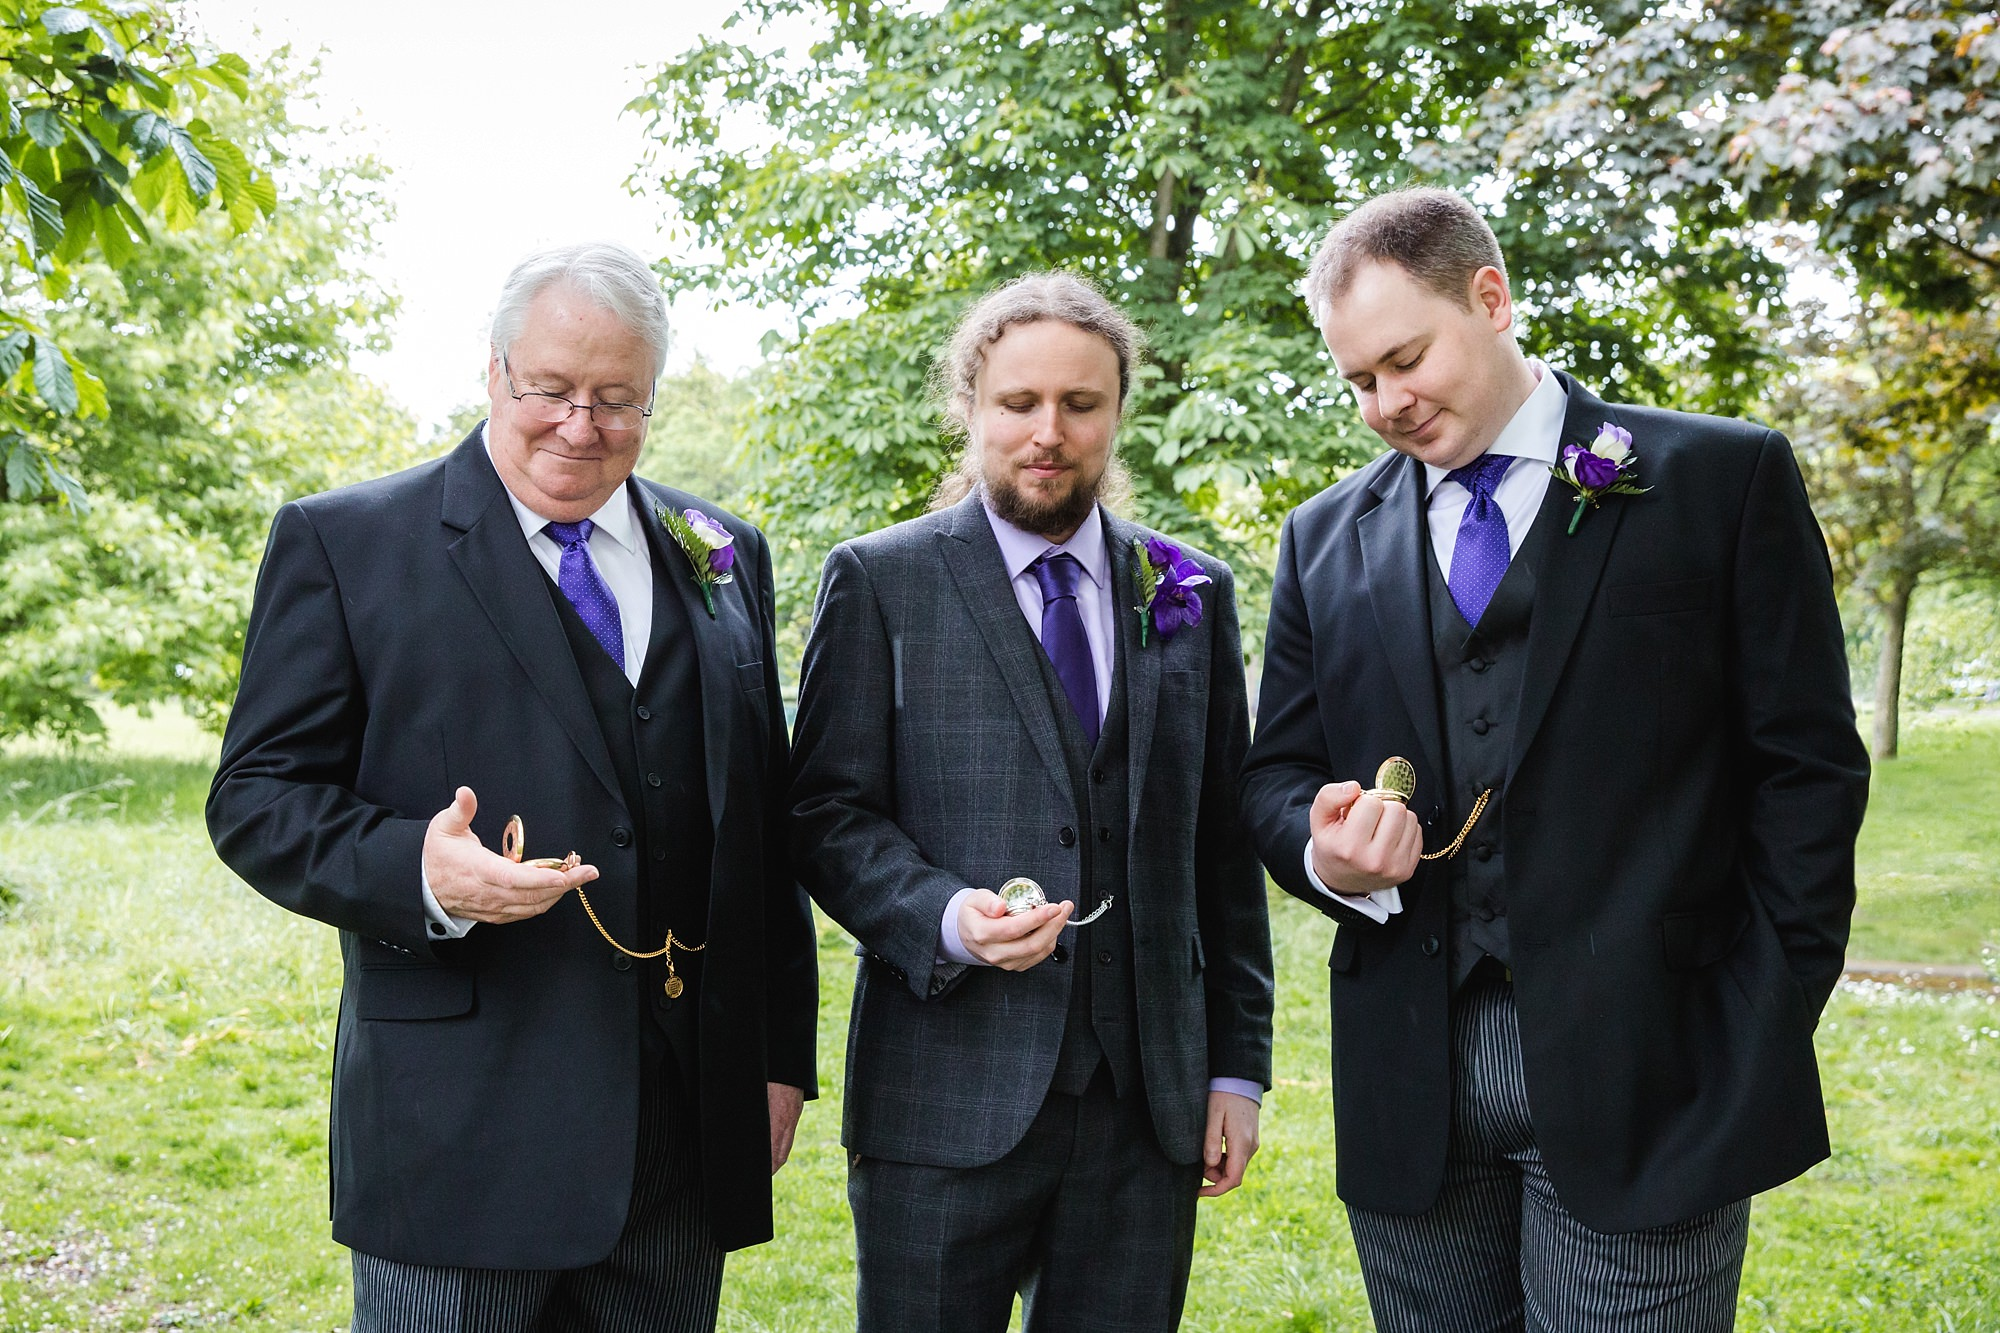 The Grange Ealing wedding groom and groomsmen with pocket watches